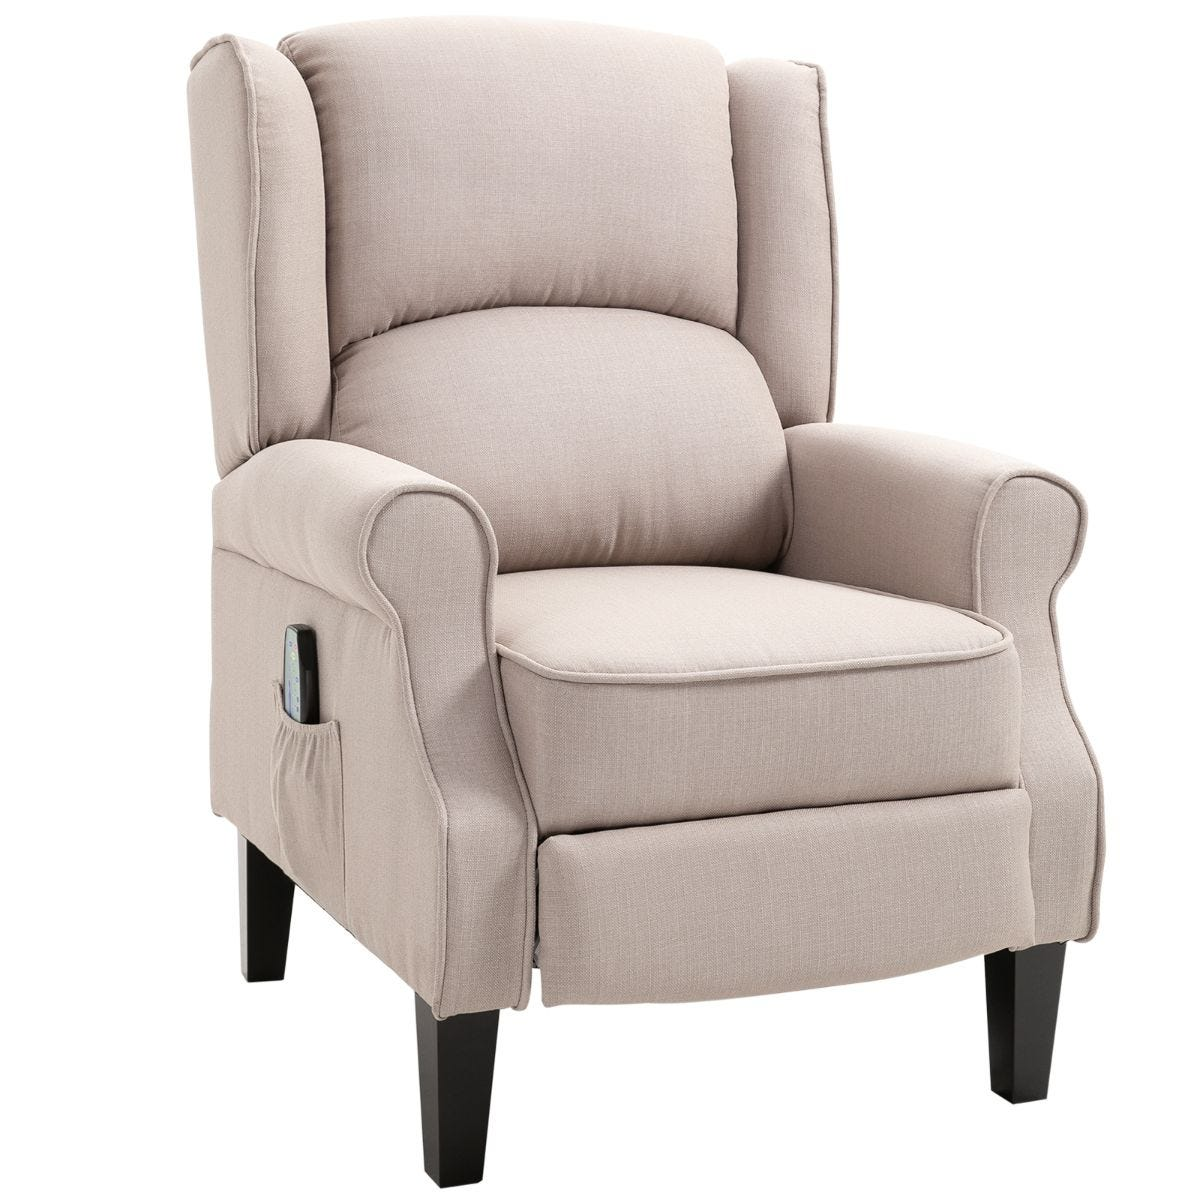 Heated Massage Reclining Armchair With Footrest And Remote Beige